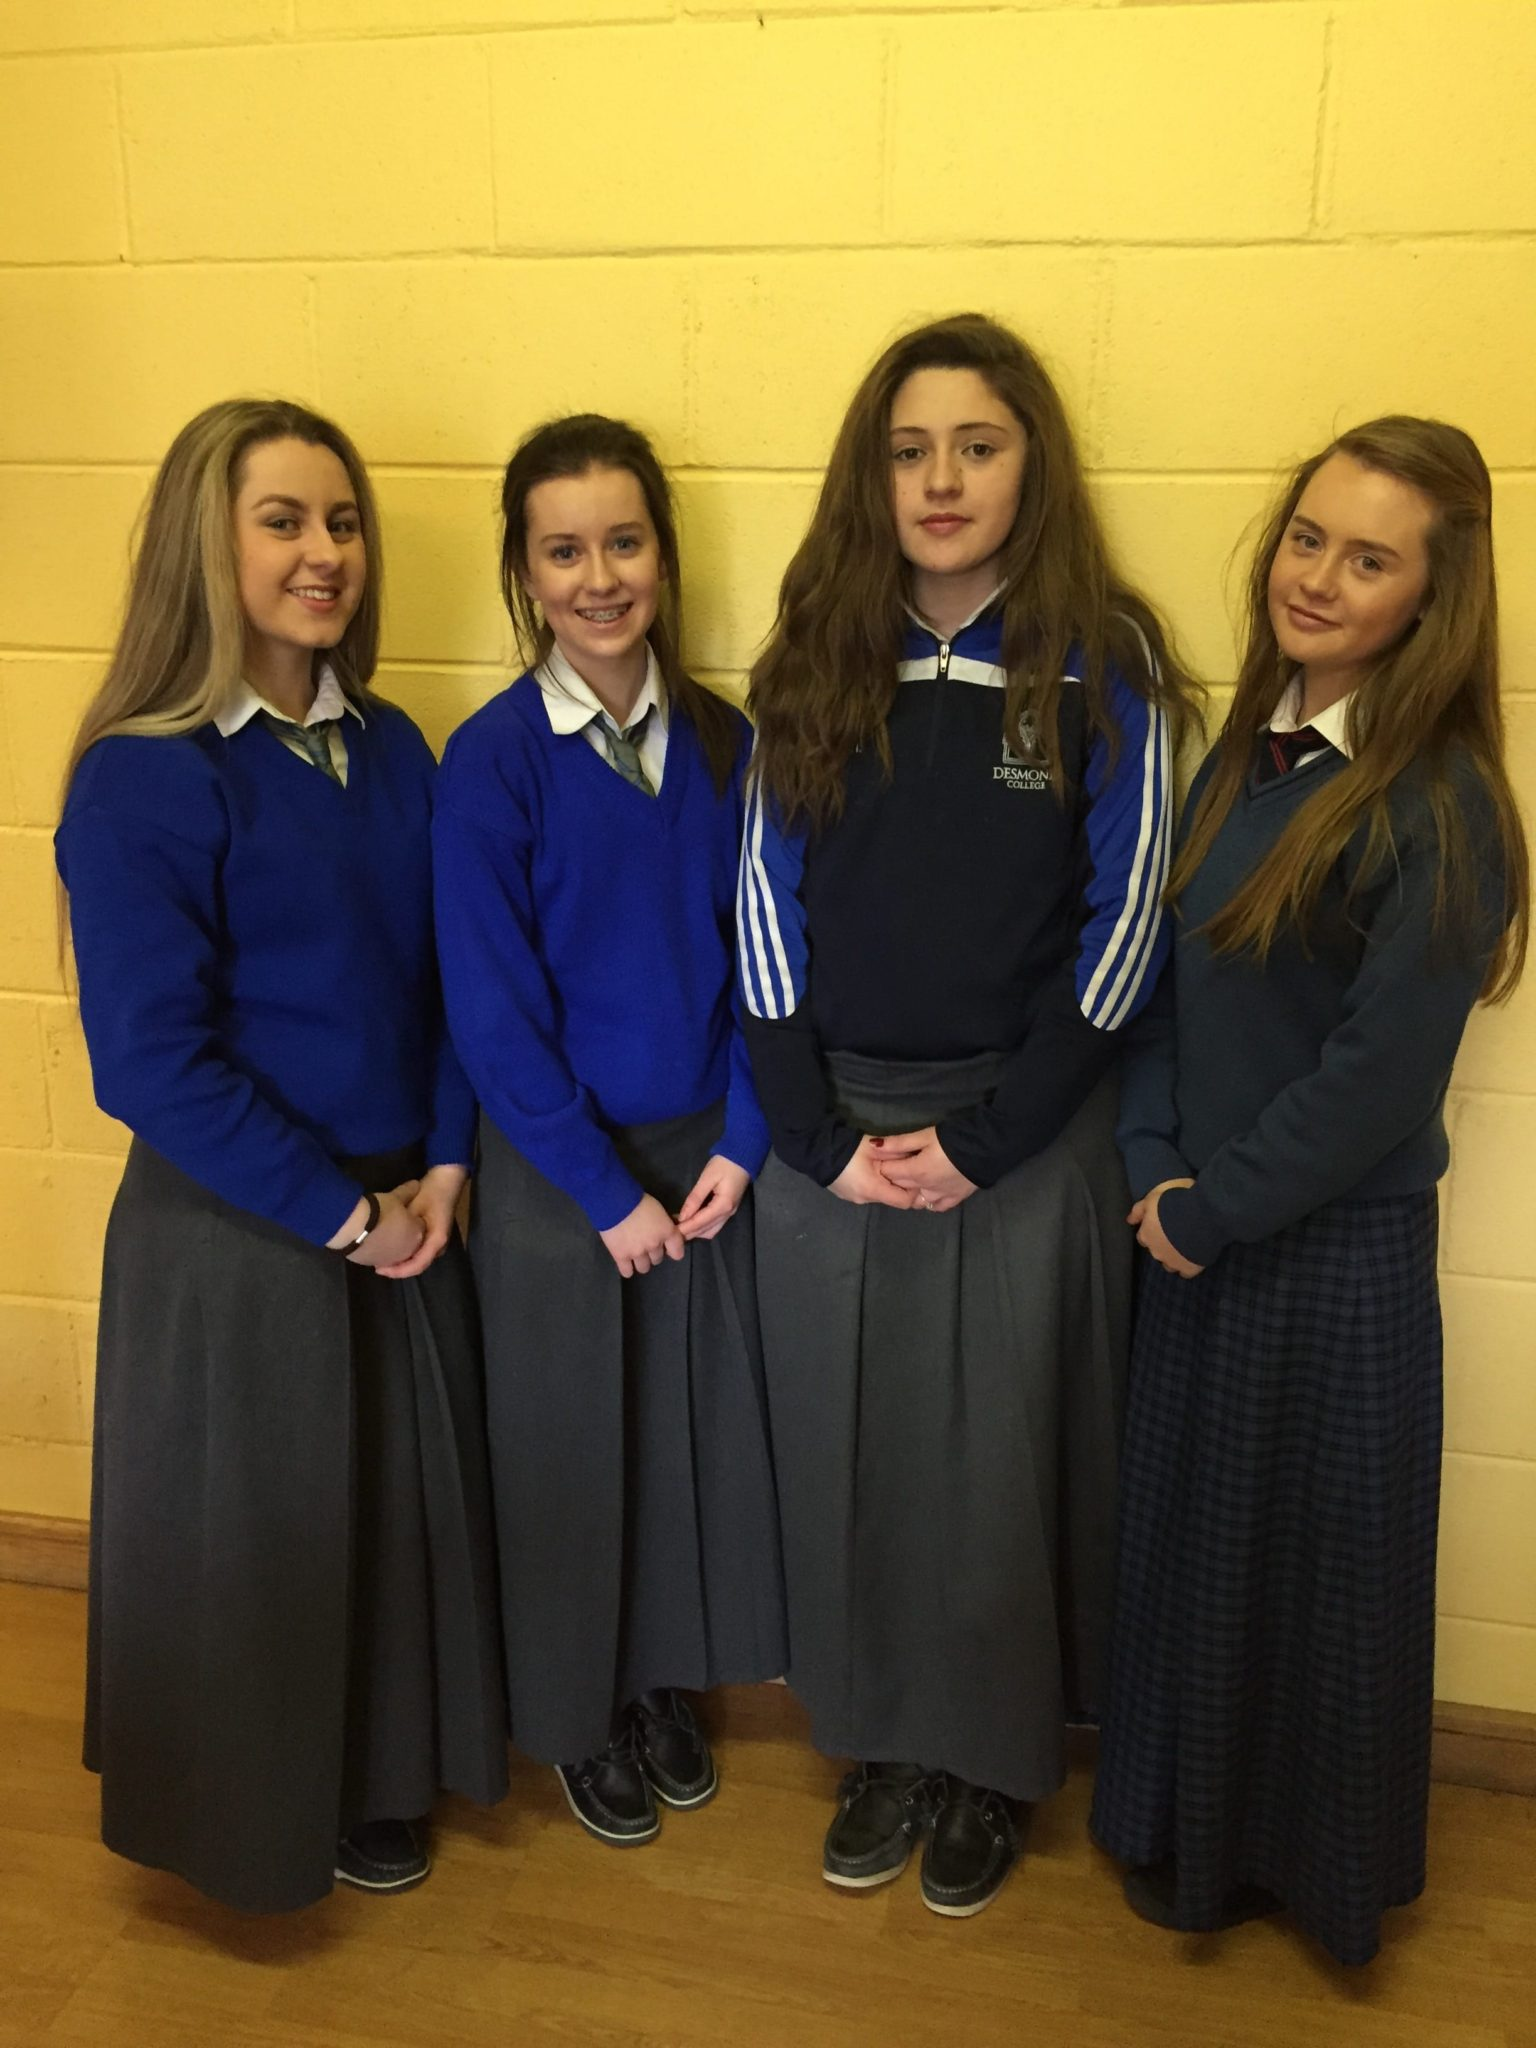 2016 Feb: TY students Leah Barry, Aine Upton, Muireann Tobin and Caoimhe Danaher raised funds for Hope Foundation, and will work with their projects in Kolkatta, India this Easter